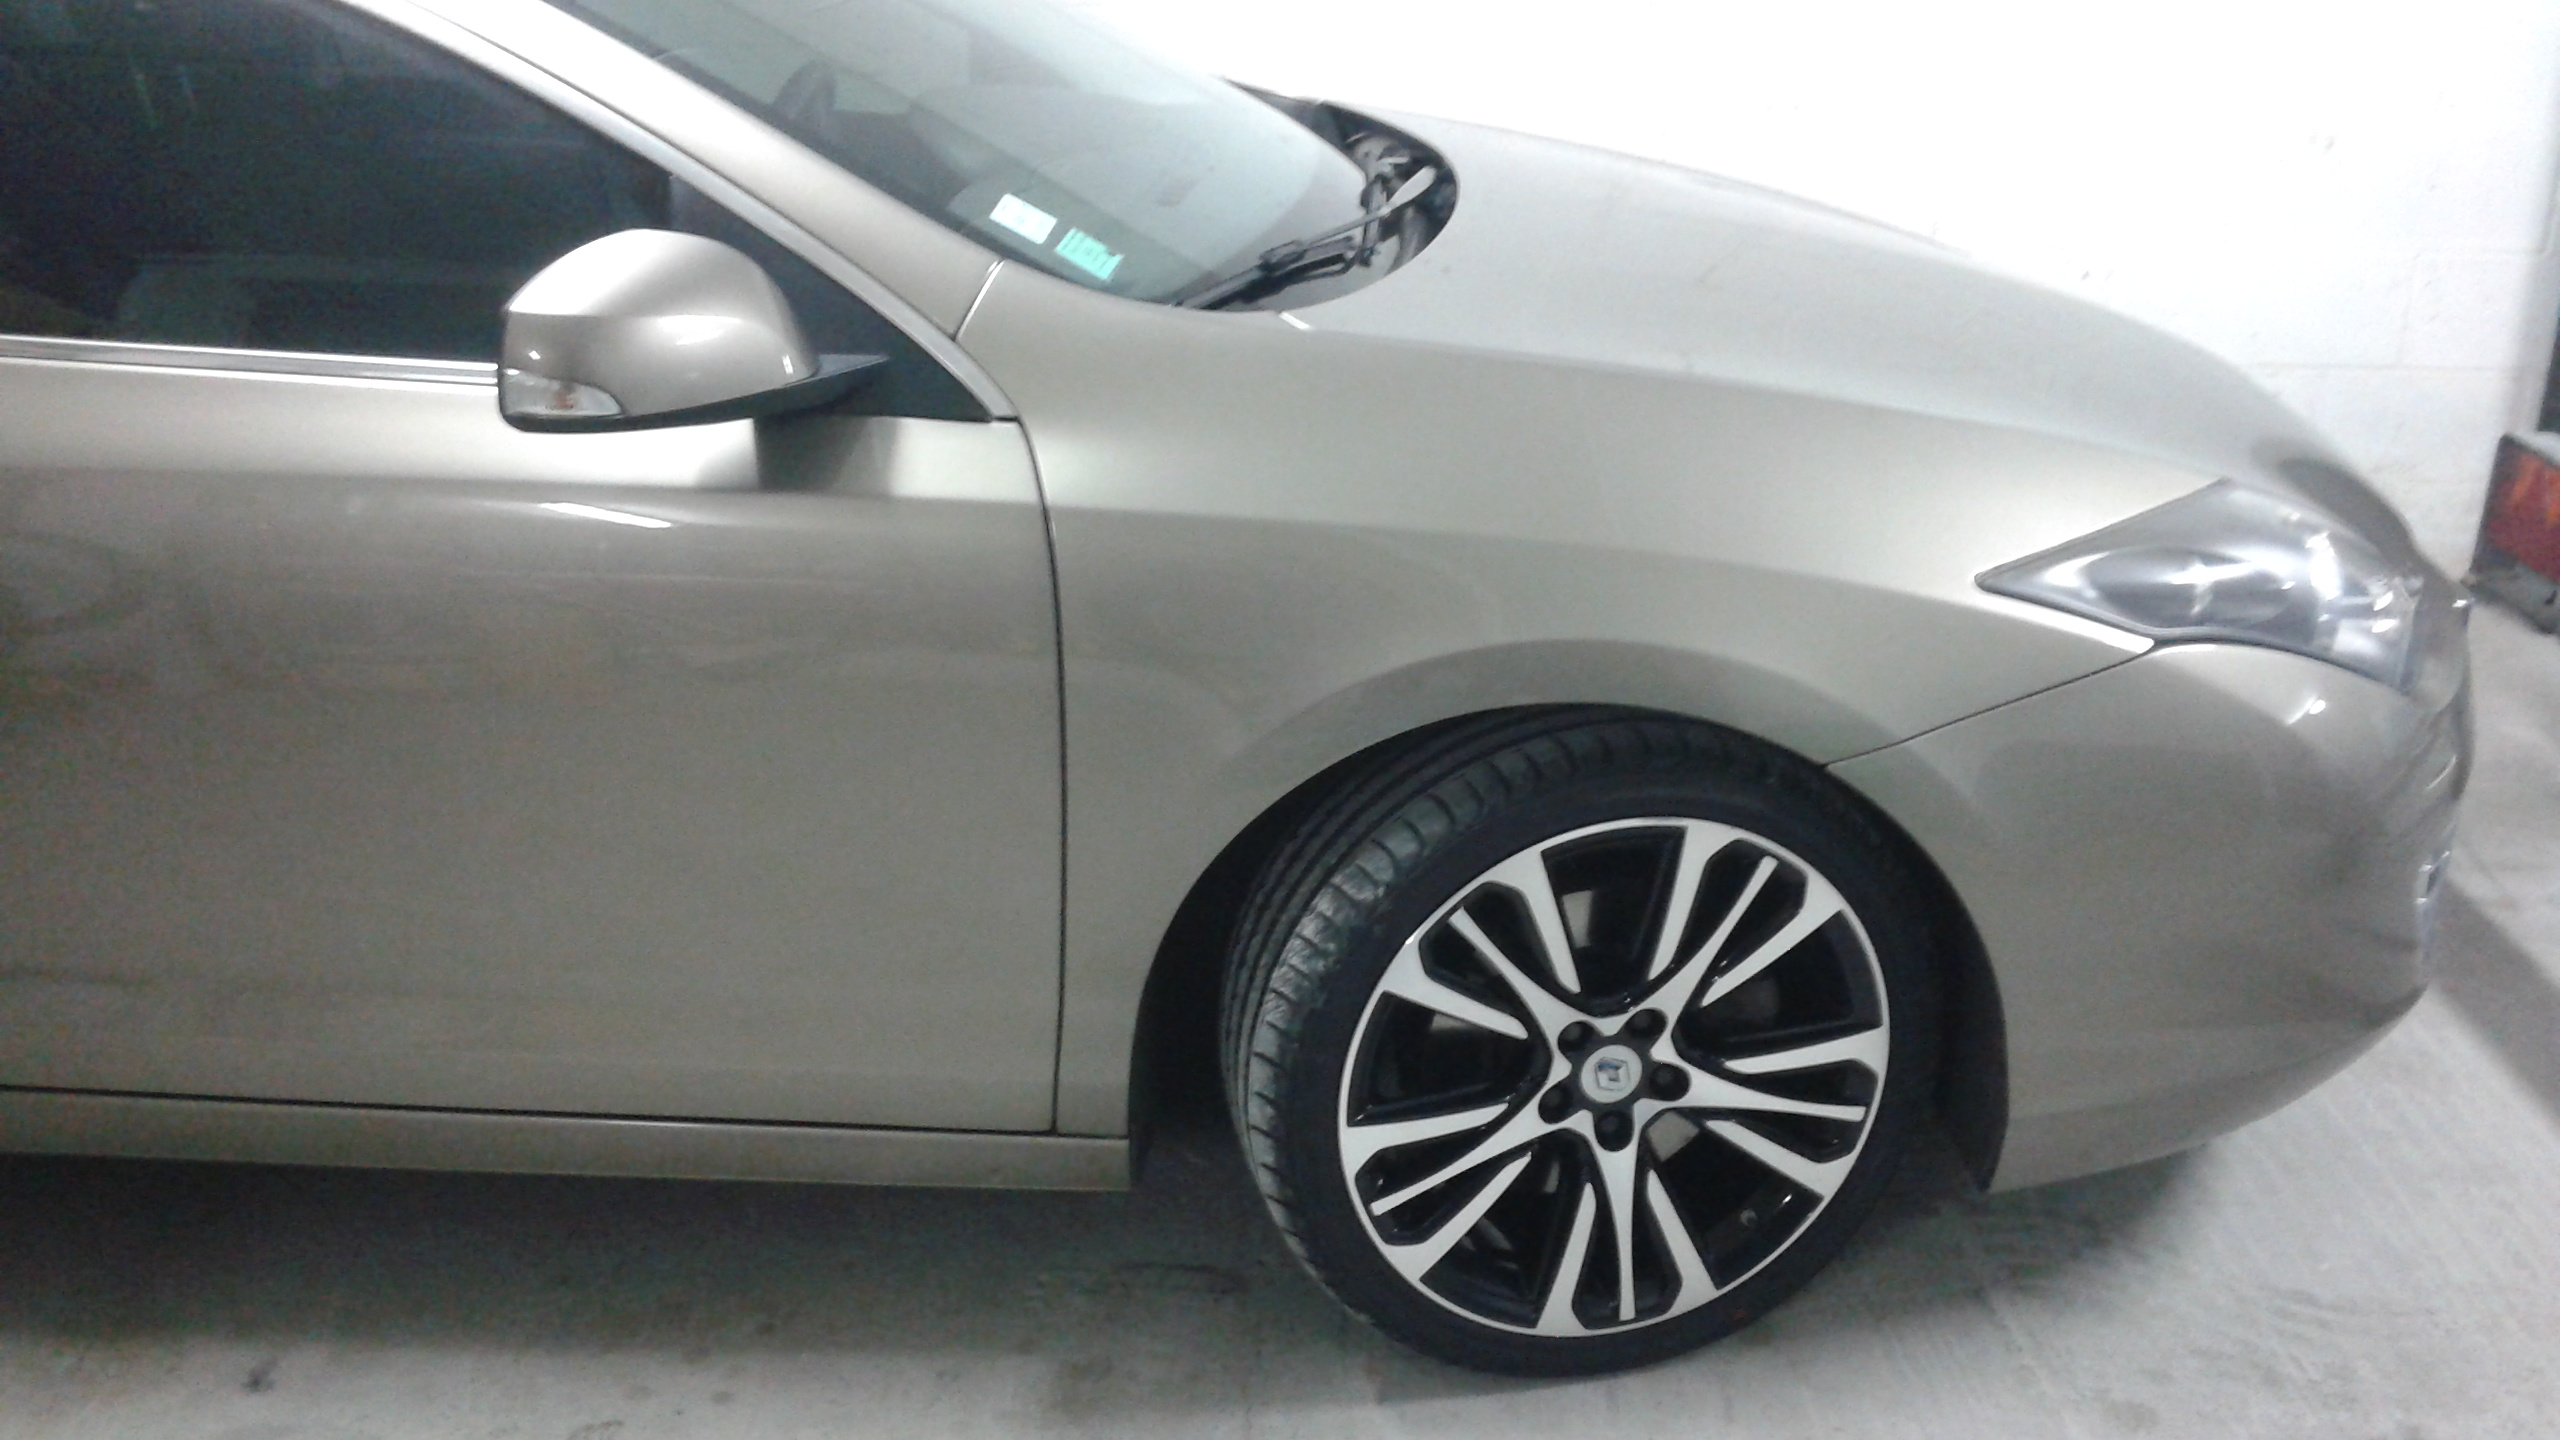 [nathanjo] Laguna III coupé initiale 3.0 dCi 235 - Page 3 20160226202646